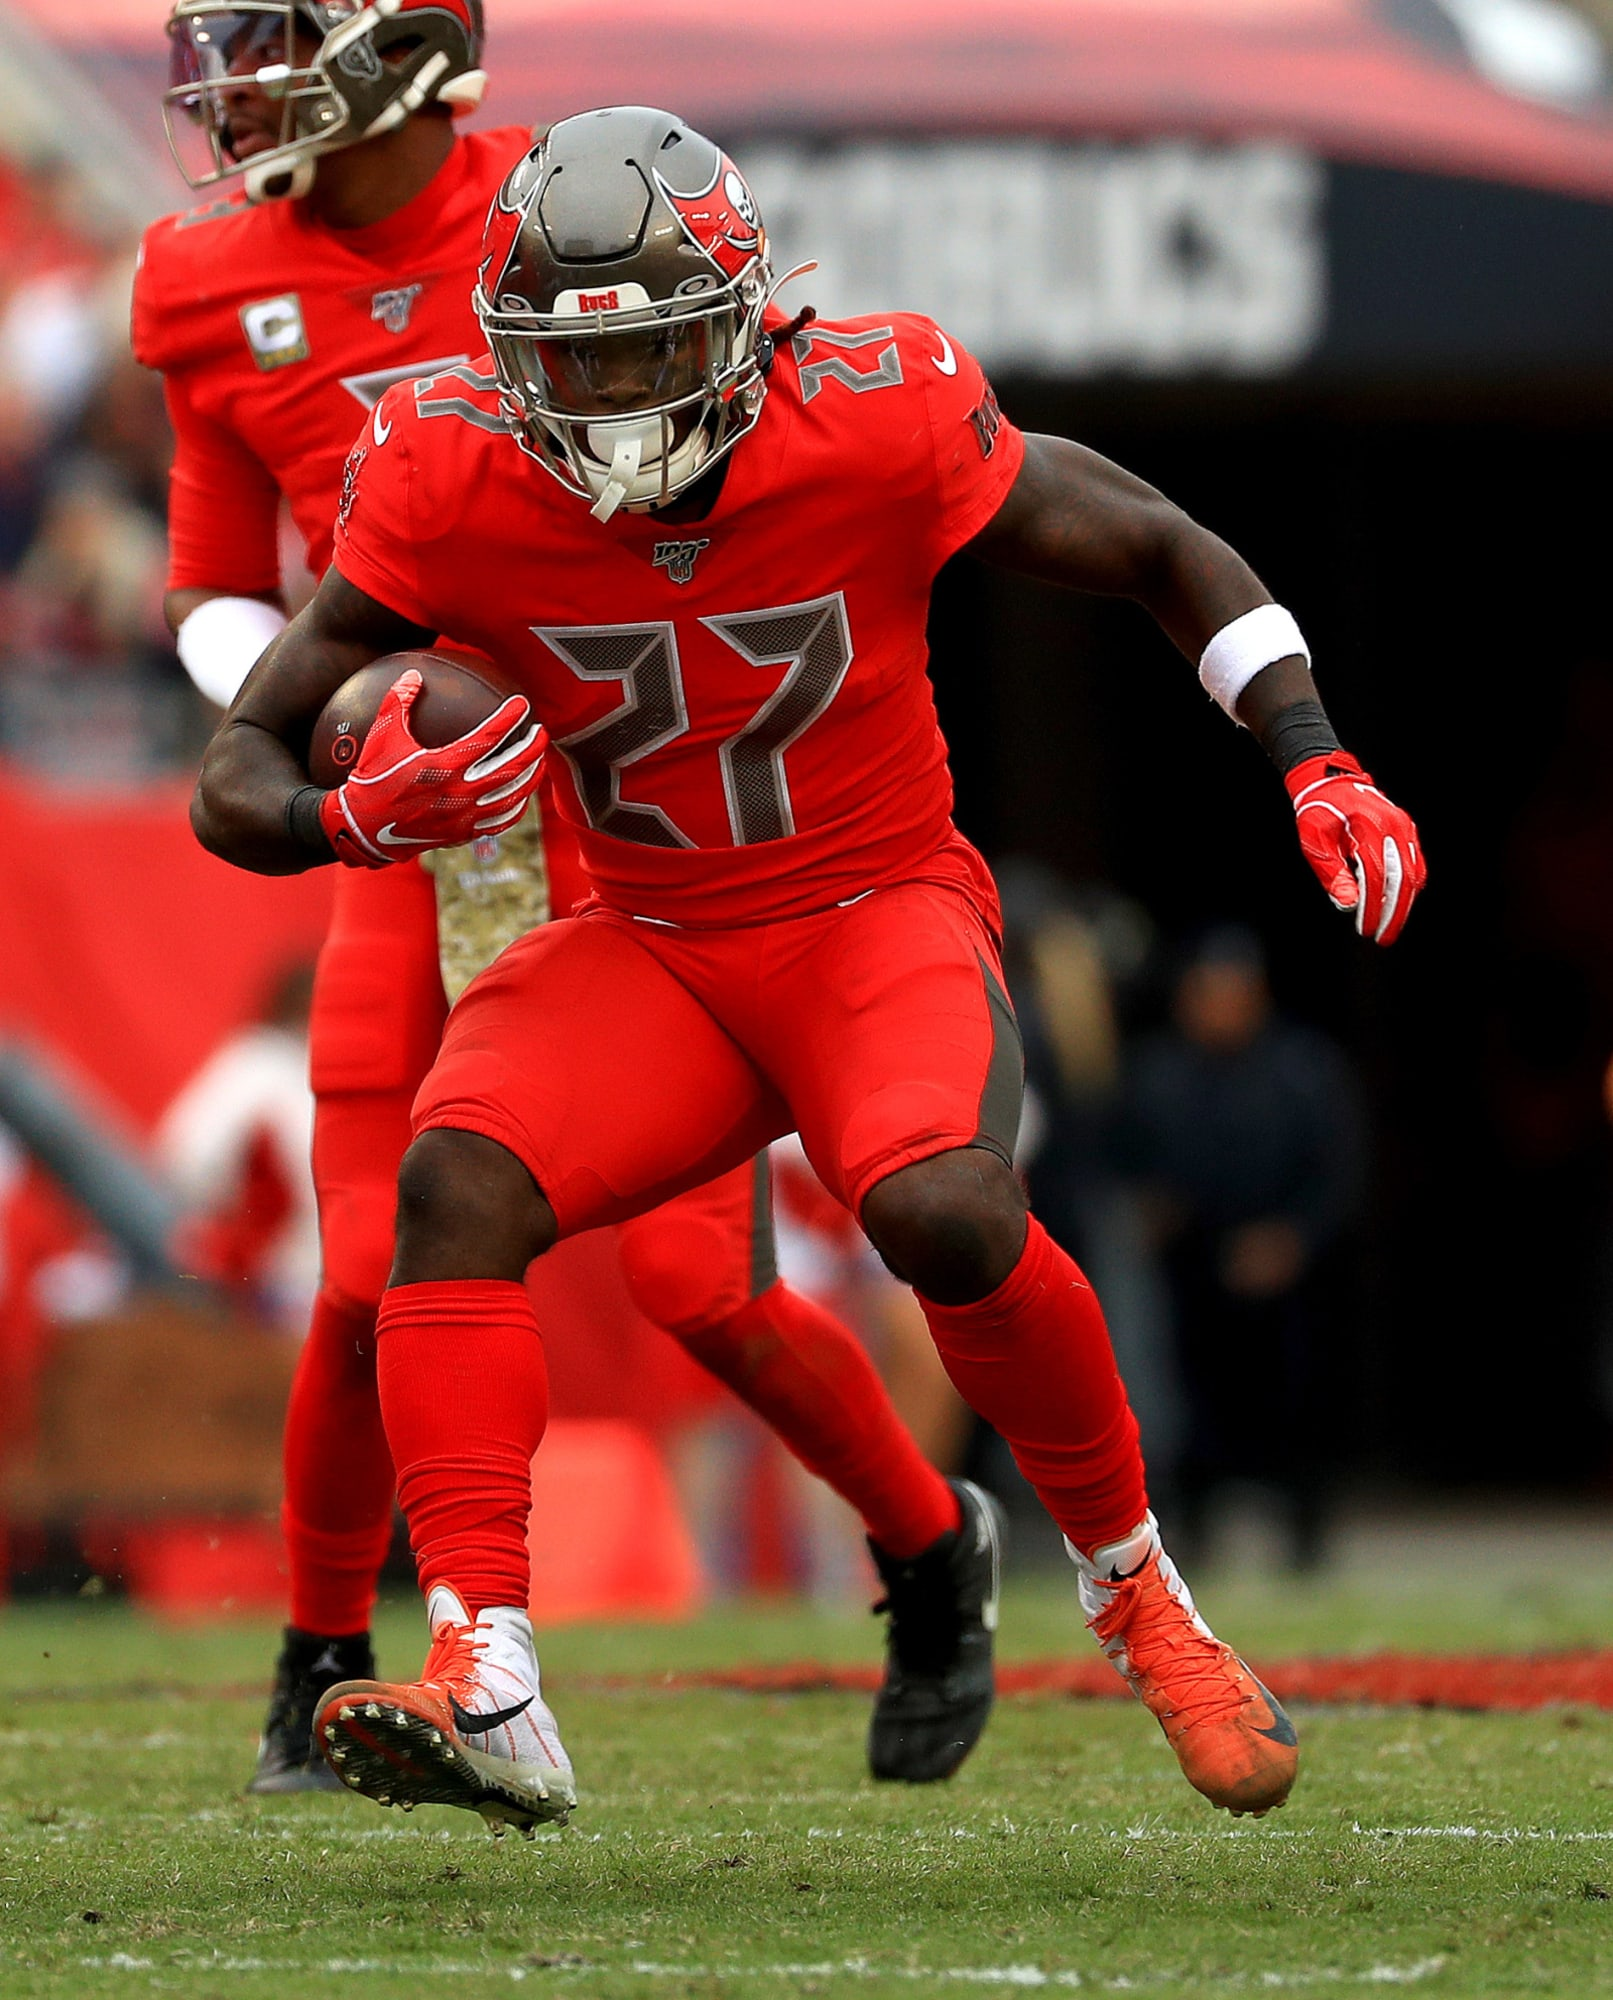 Ronald Jones Can Have Bright Future With Buccaneers